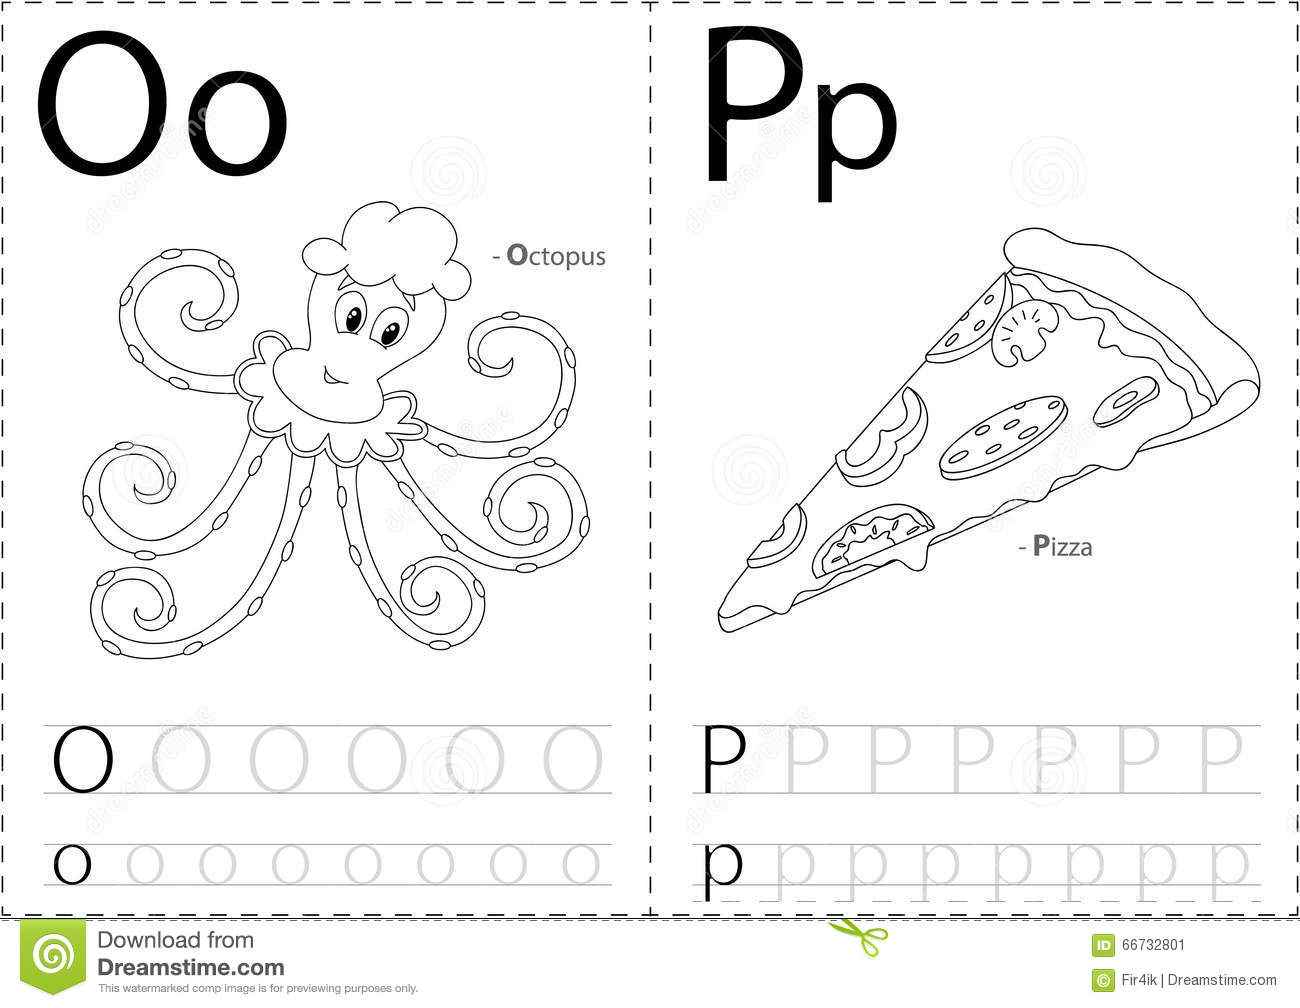 Cartoon Octopus And Pizza Alphabet Tracing Worksheet